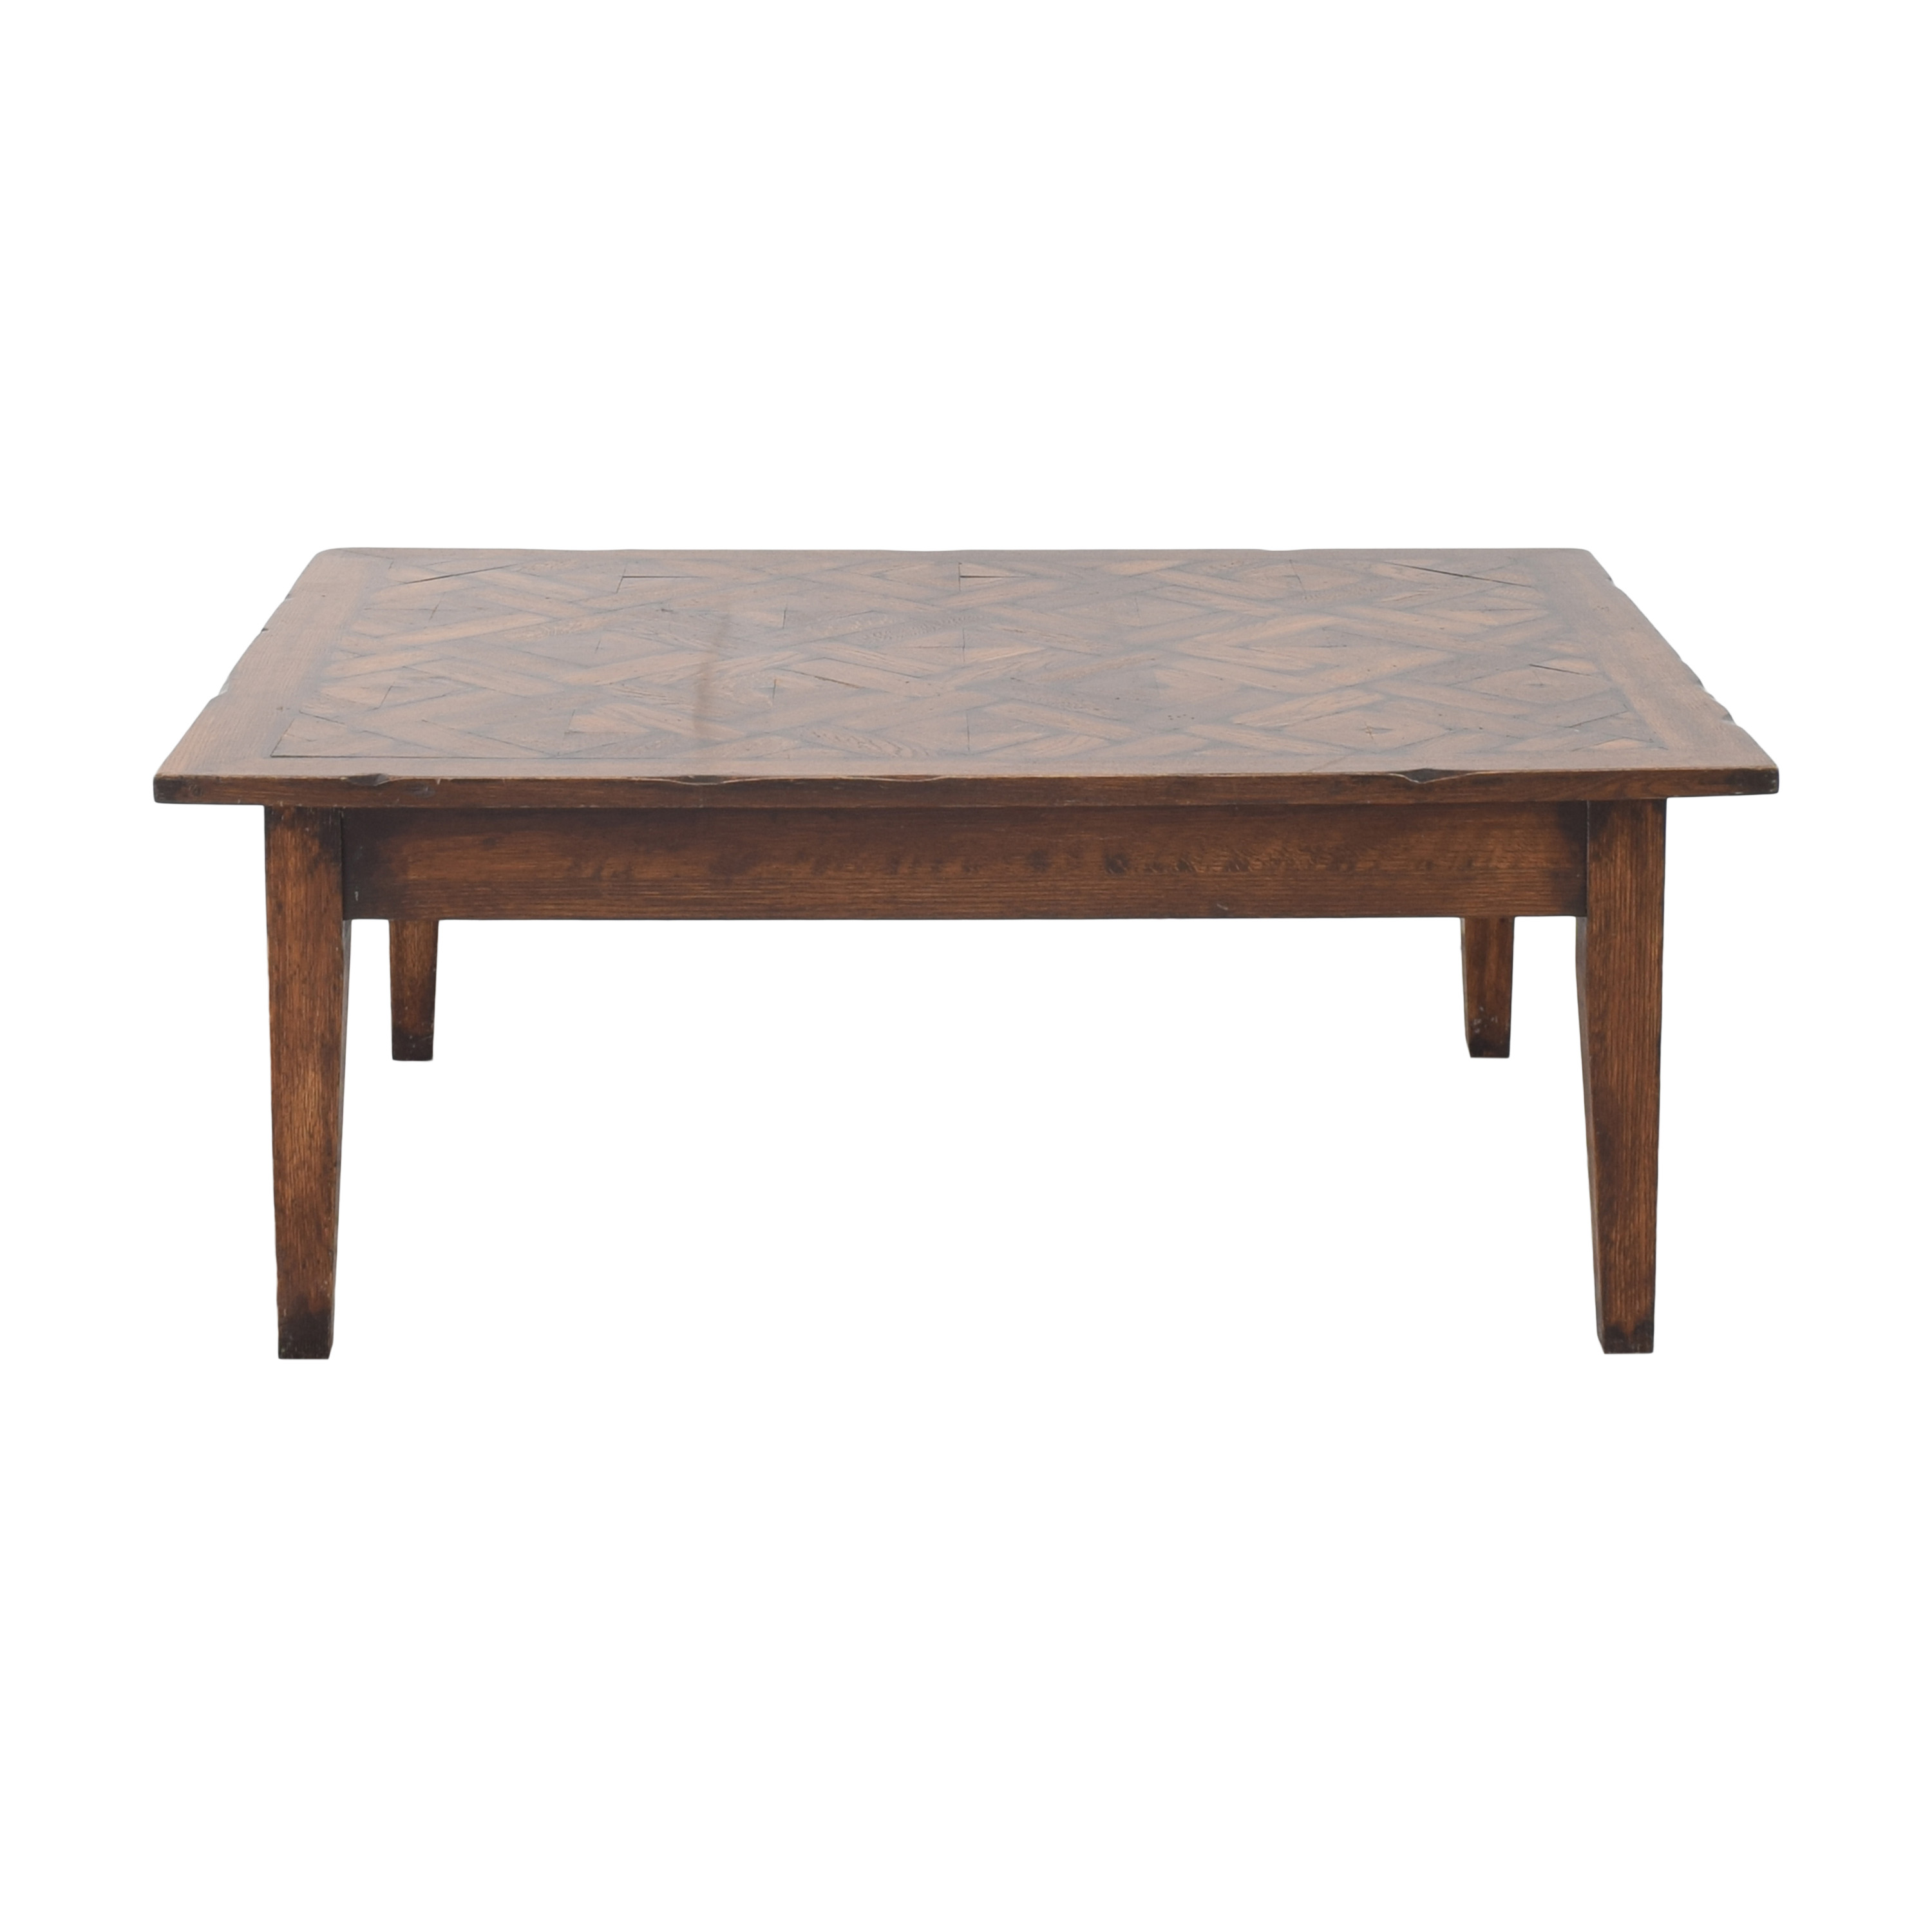 buy G+J Styles Parquet Top Coffee Table G&J Styles